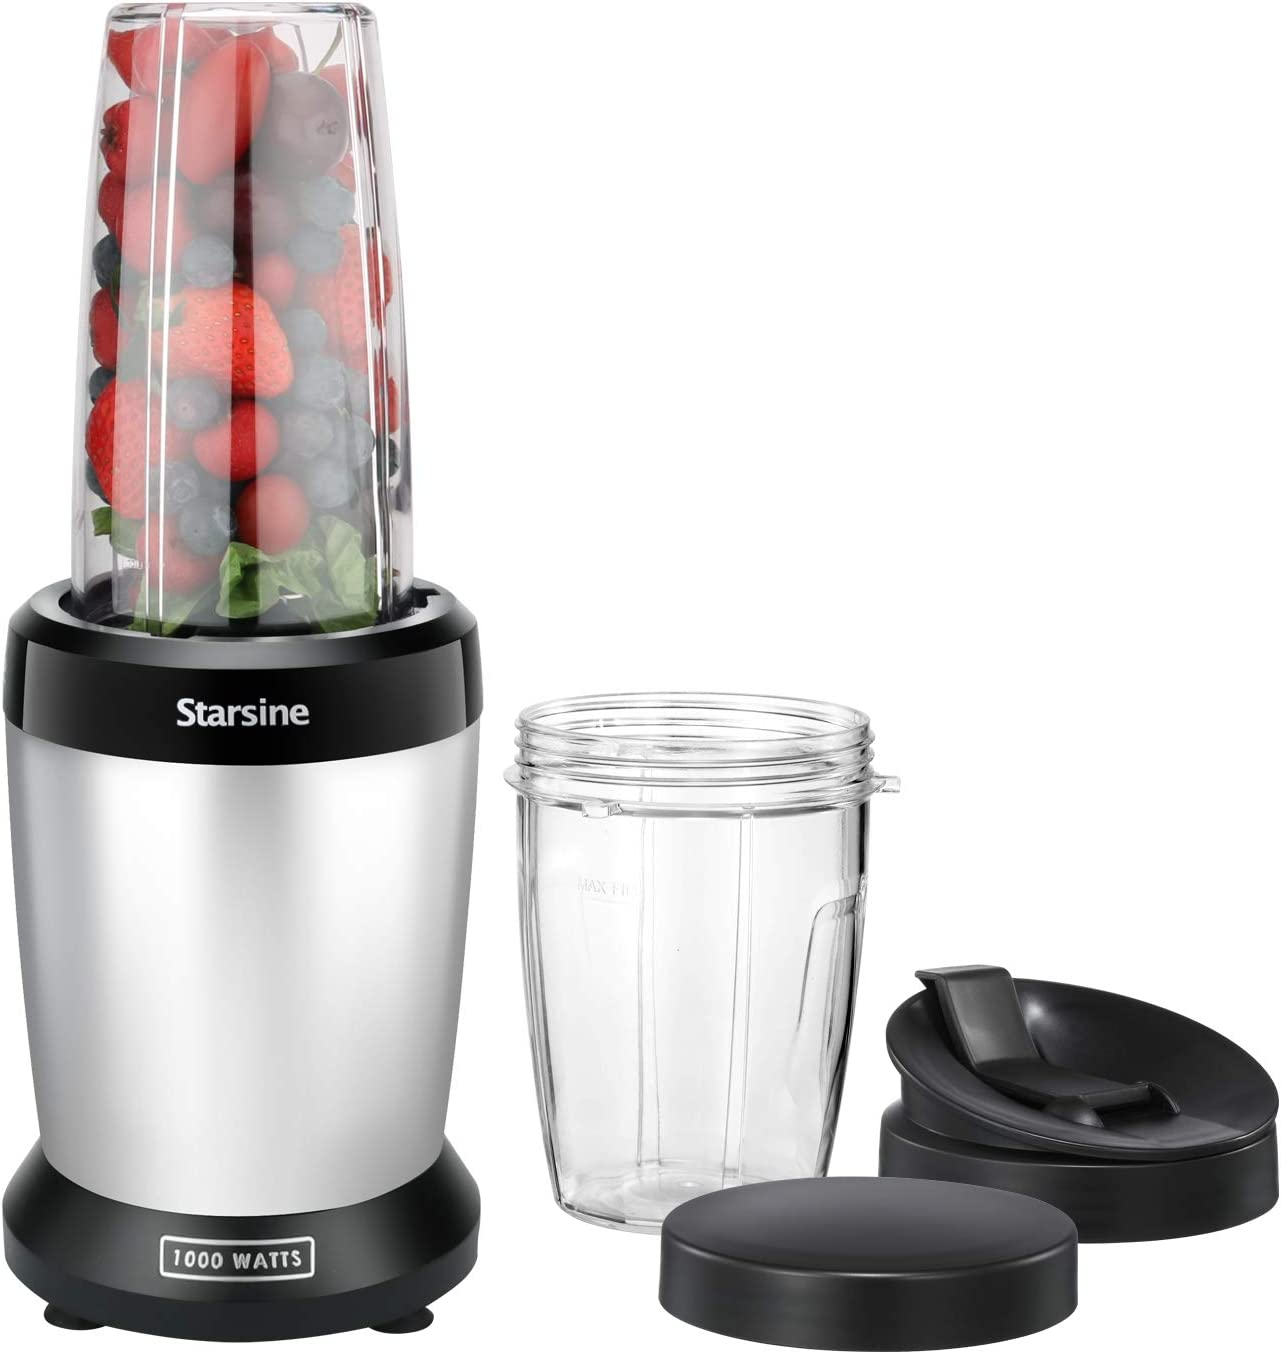 Starsine Personal Blender for Shakes and Smoothies, 1000 Watts,with 27oz and 17oz Tritan material cups, BPA free, Black/Silver